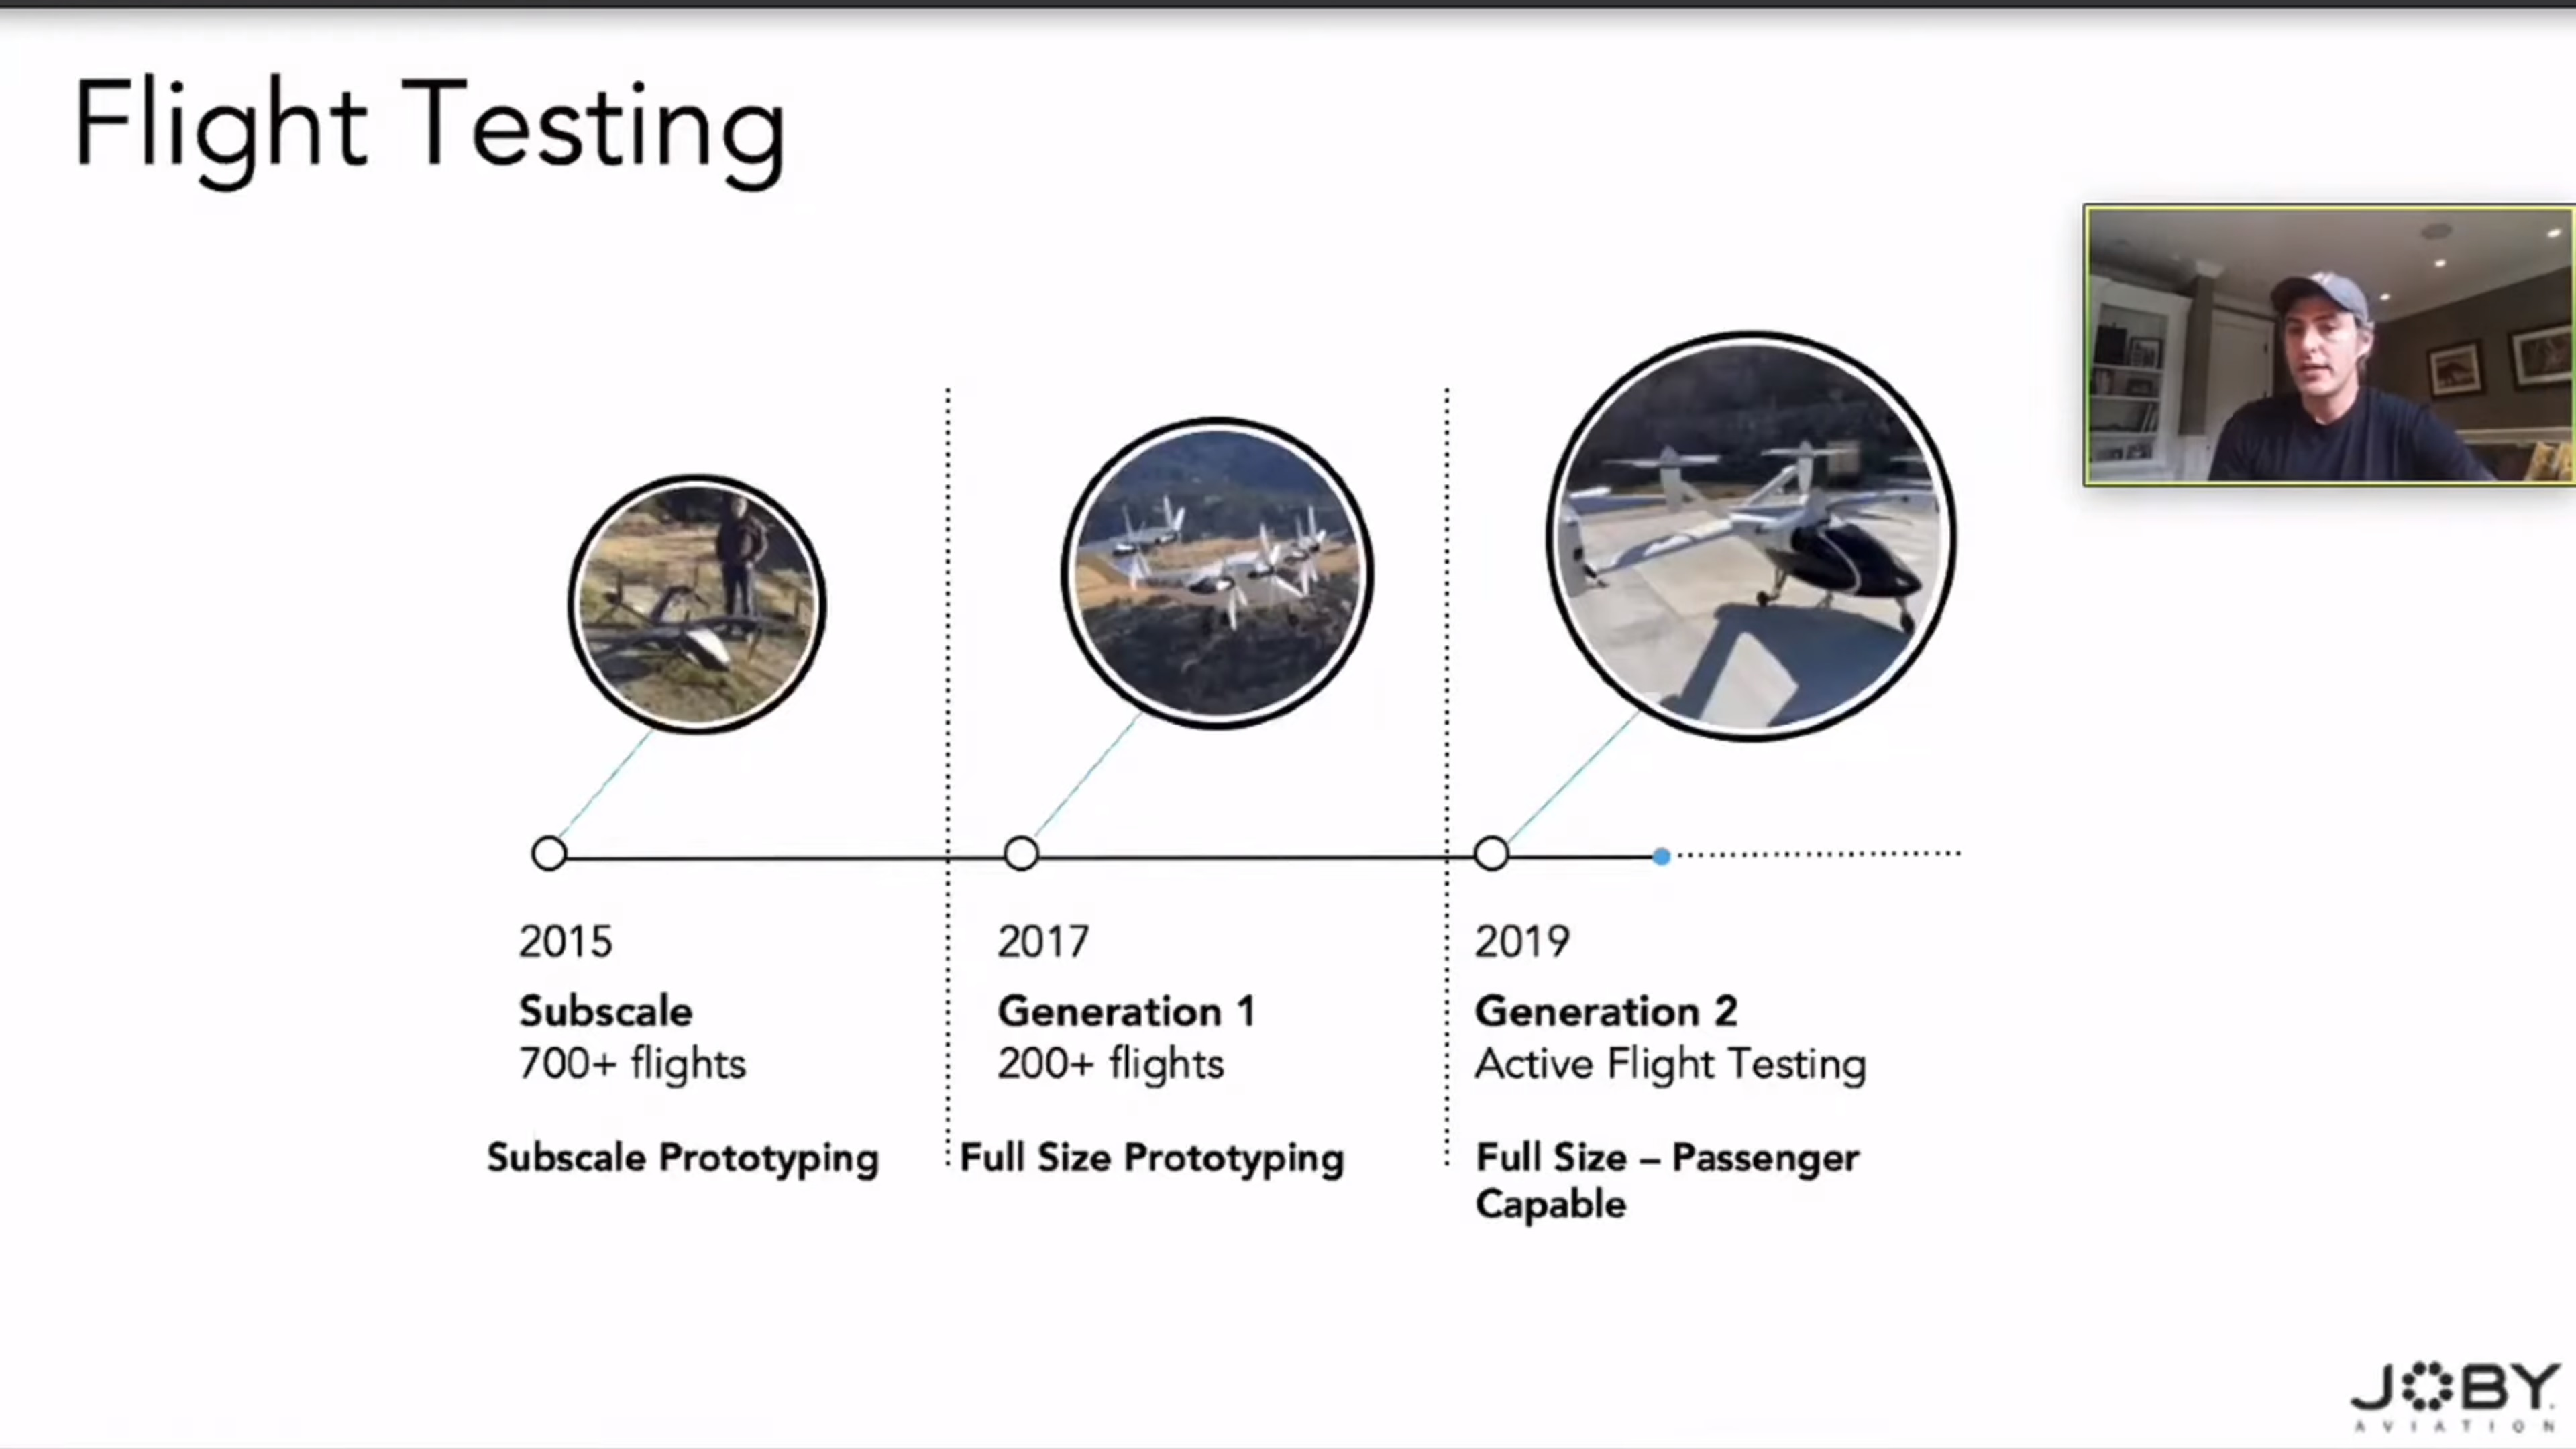 Agility Prime has Joby Aviation Paul Sciarra review their flight testing from 2015-2019 on Zoom April 2020.